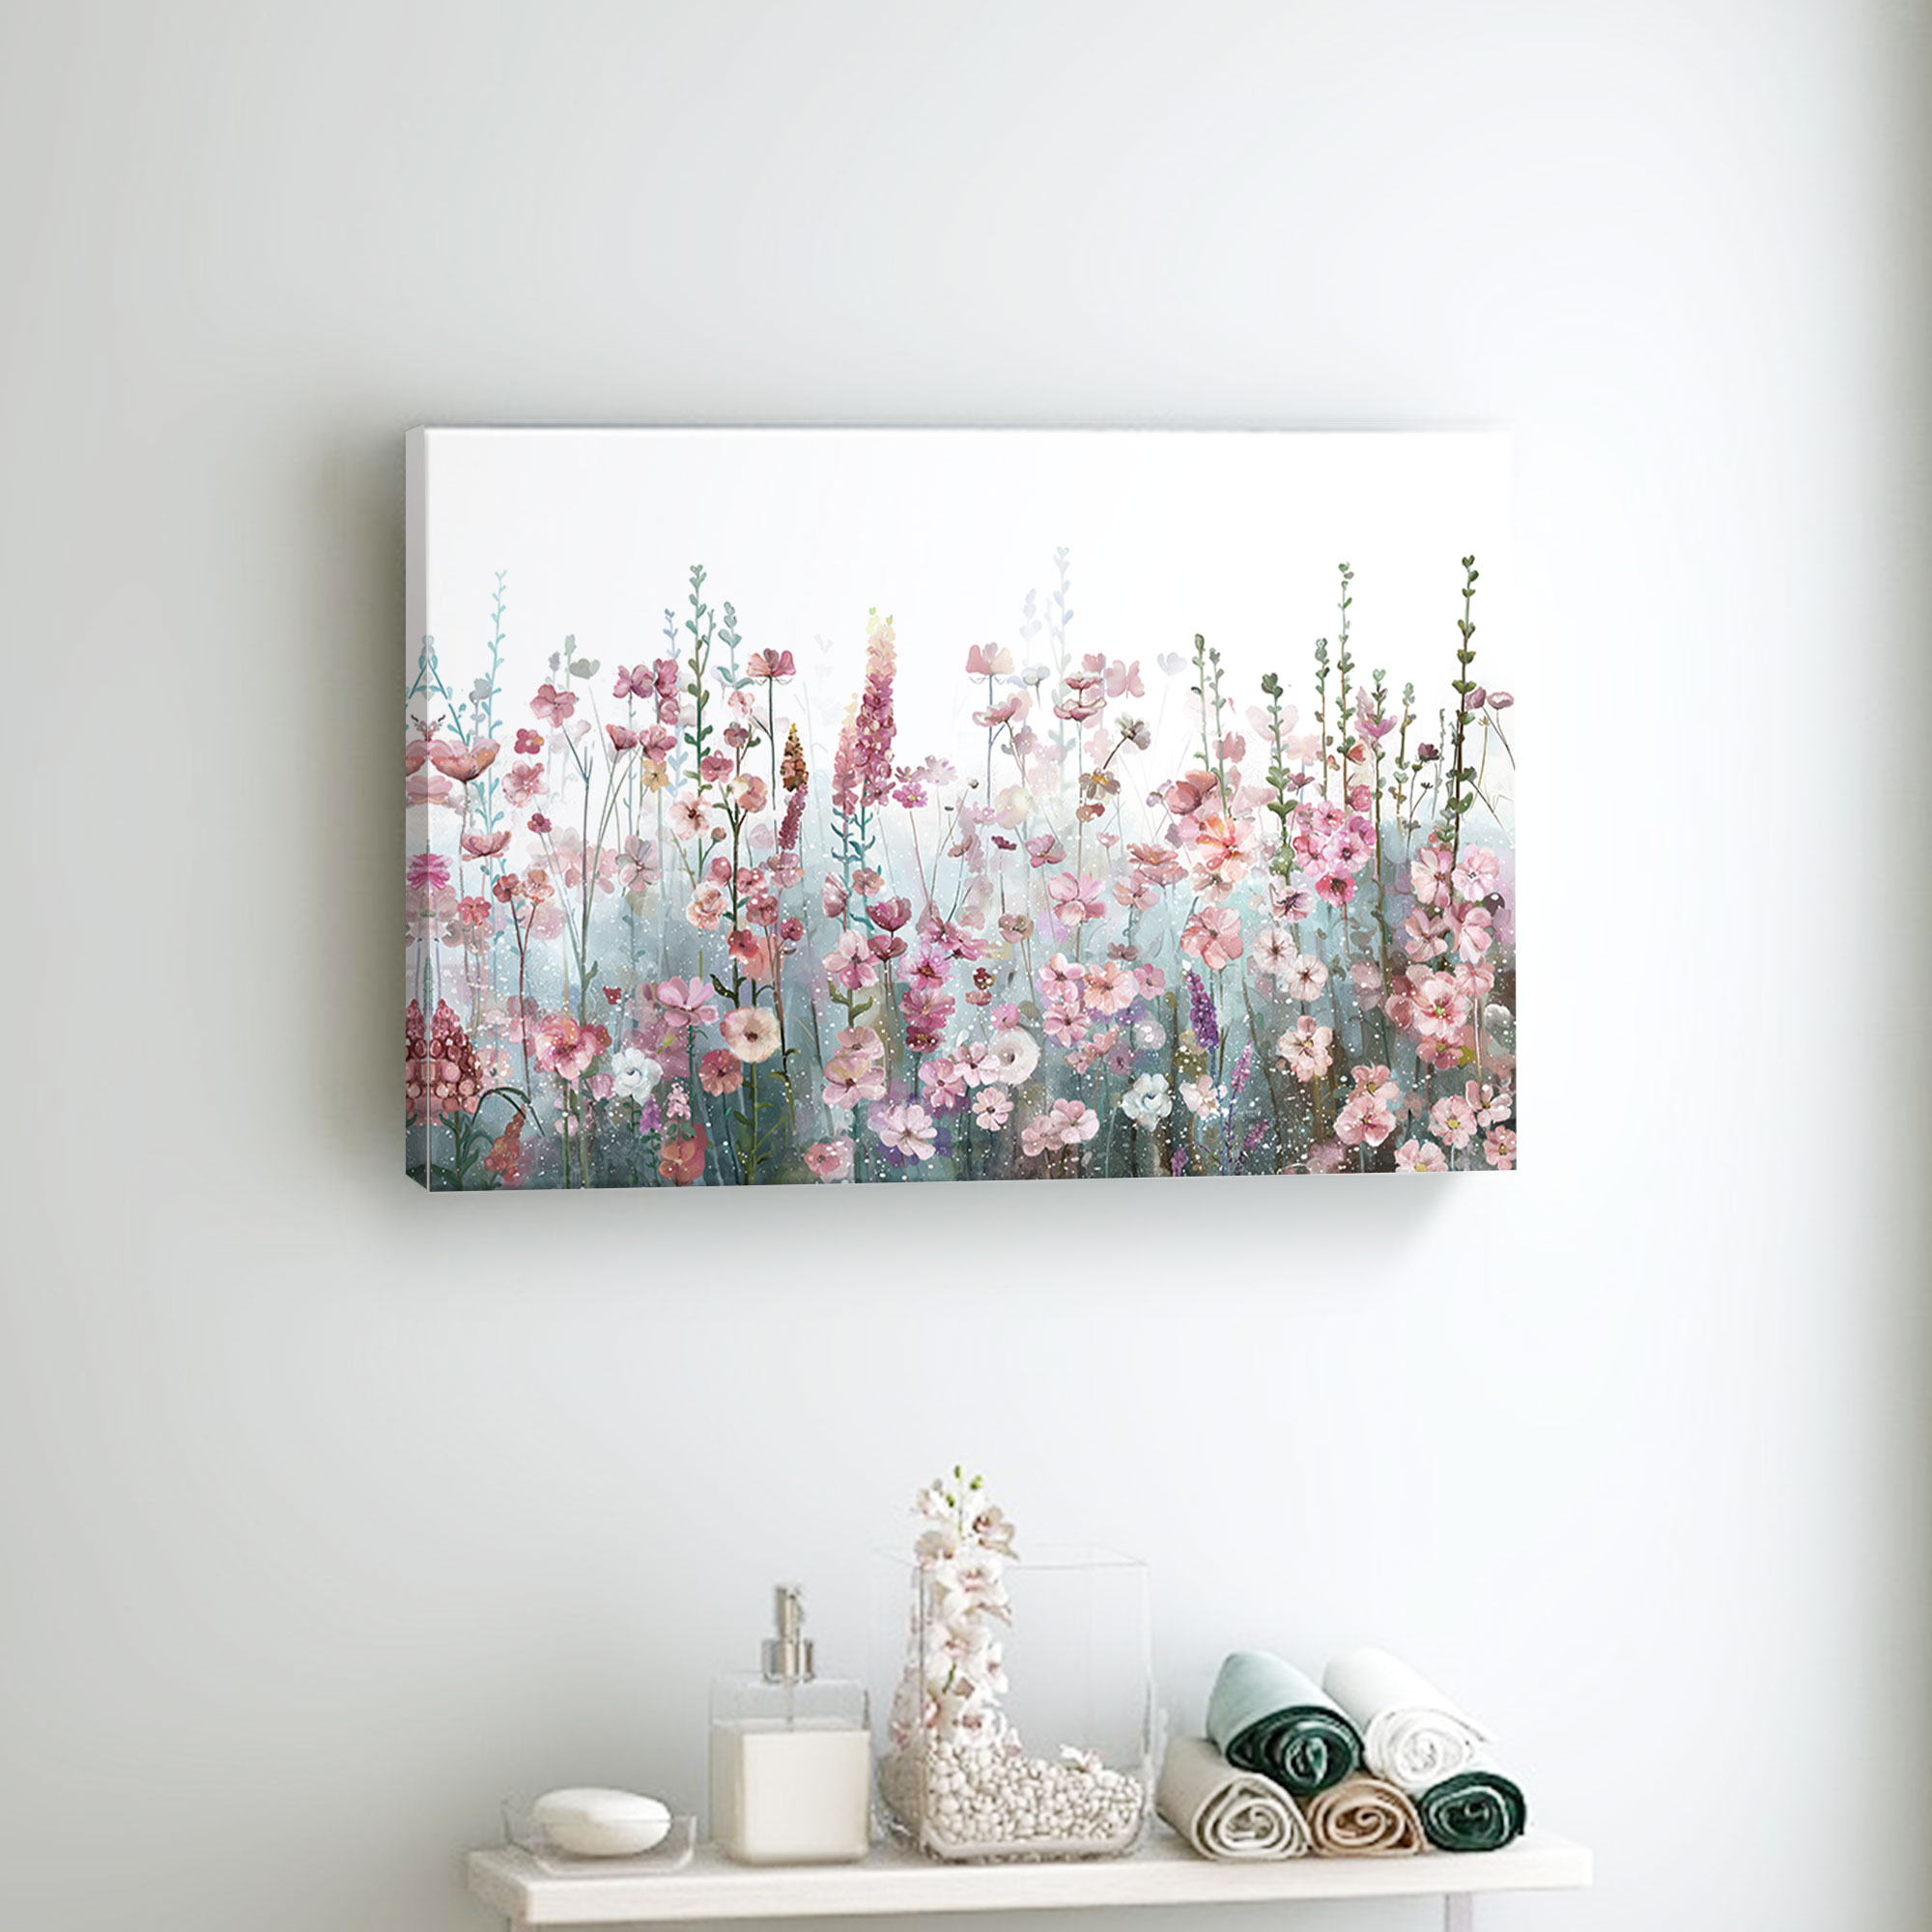 Flower Wall Art Canvas Painting Botanical Posters for Bedroom Pink Grey Bathroom Pictures Modern Living Room Home Decor Prints